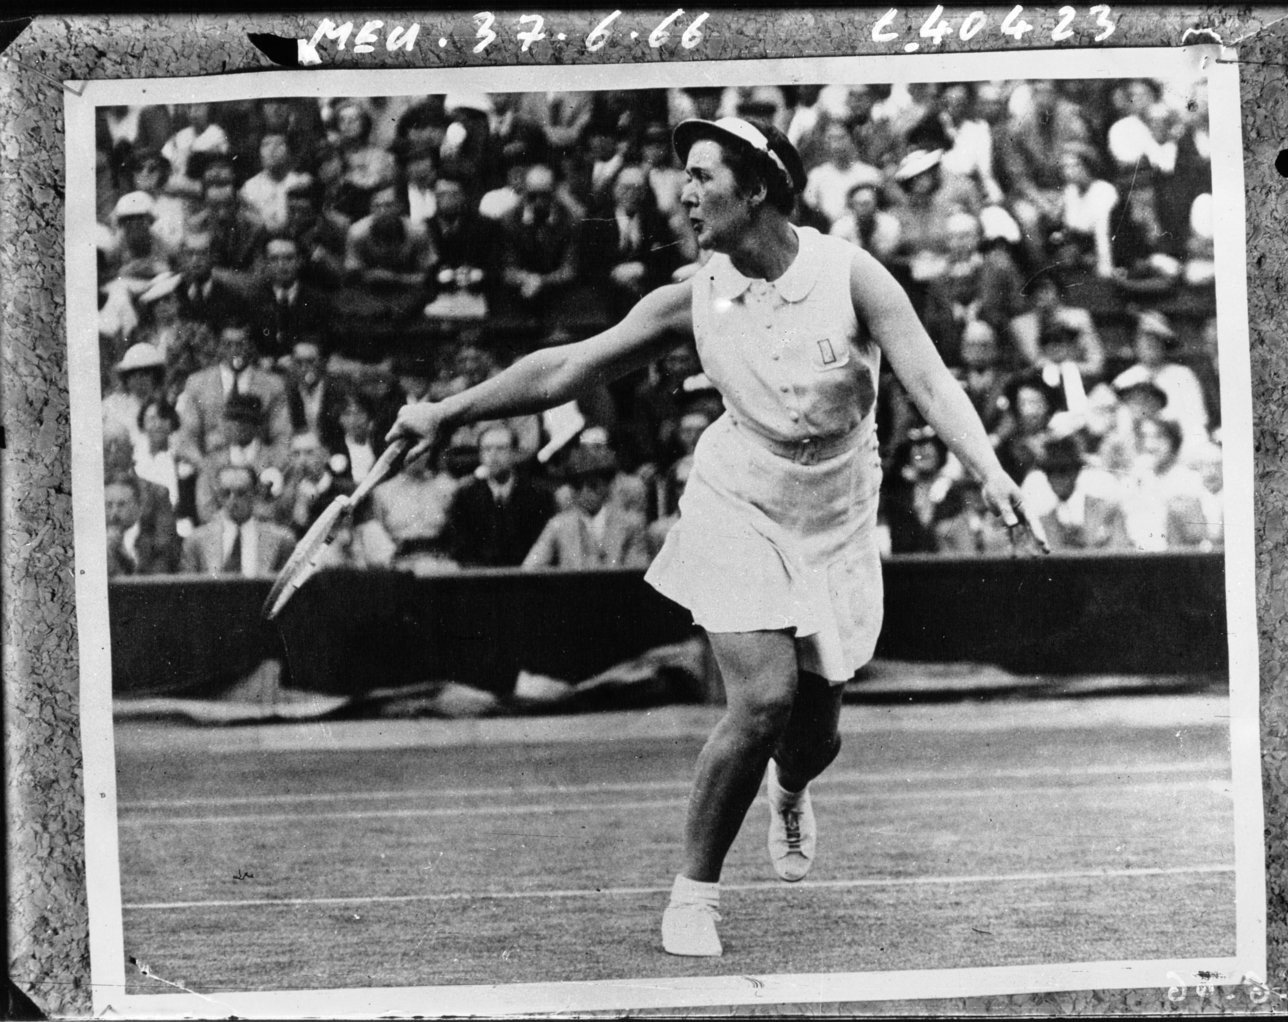 England: International tennis championships in Wimbledon, 5th day; Miss Sanders [?] During her match with Miss Lizana (Chile), 1937, Agence de presse Meurisse, Bibliothèque Nationale de France, Public Domain Mark